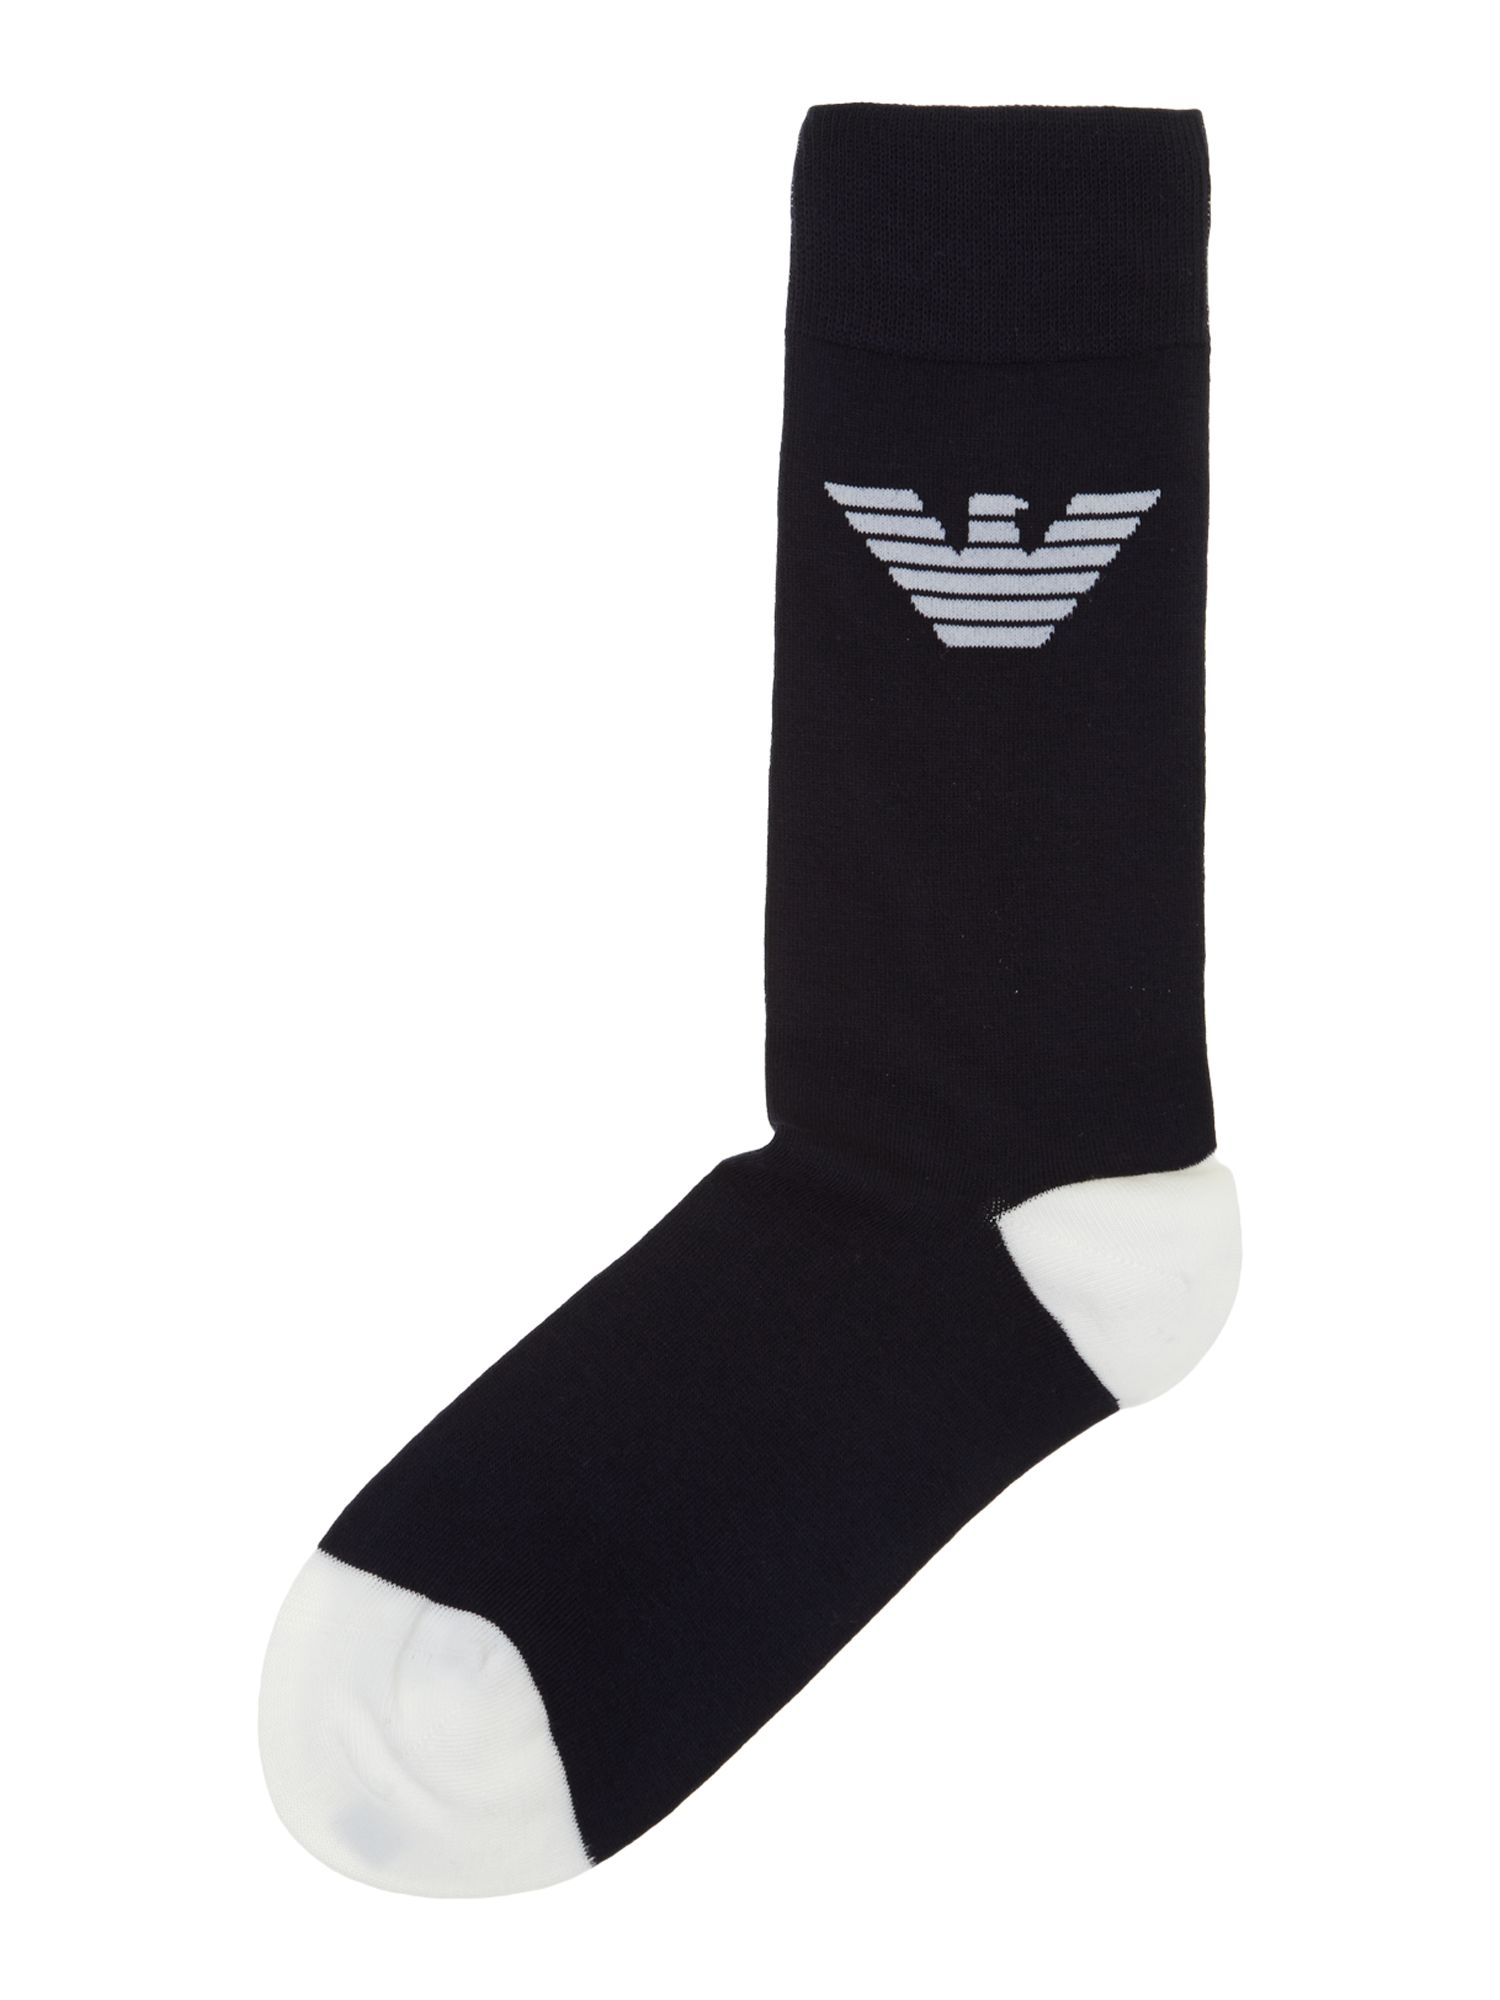 3 pack eagle logo sock